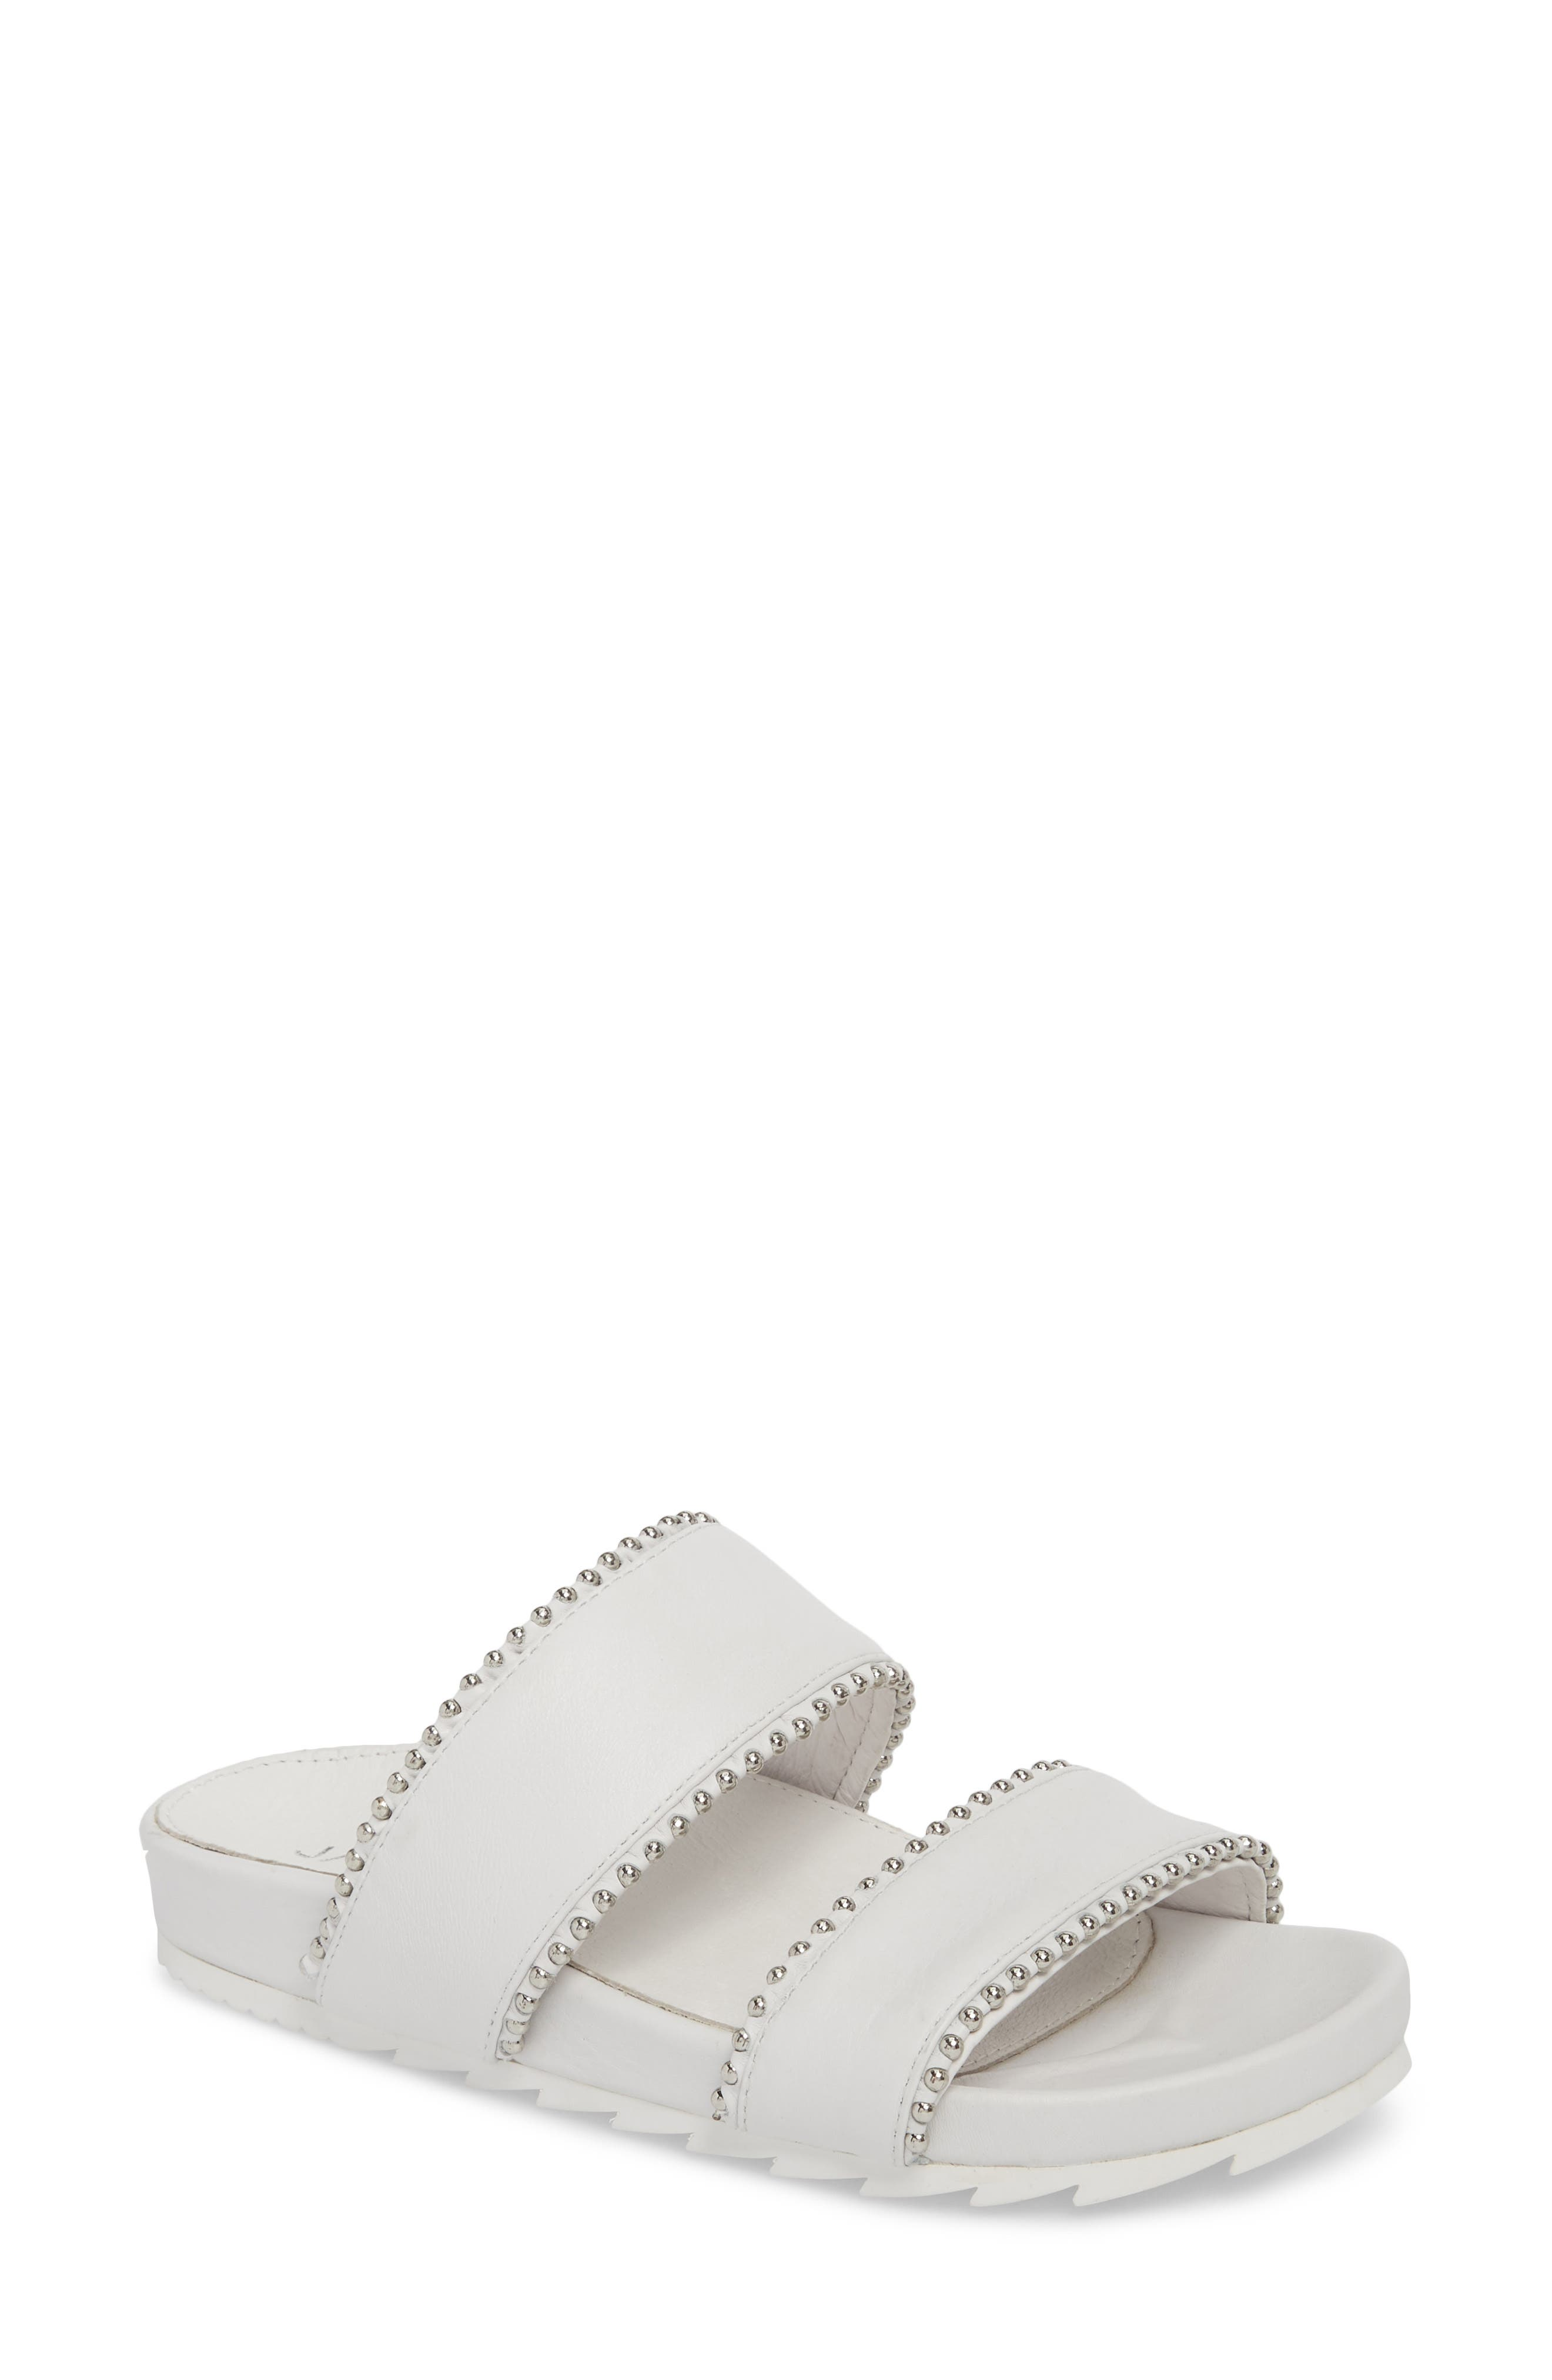 Emmie Bead Chain Slide Sandal,                         Main,                         color, White Leather